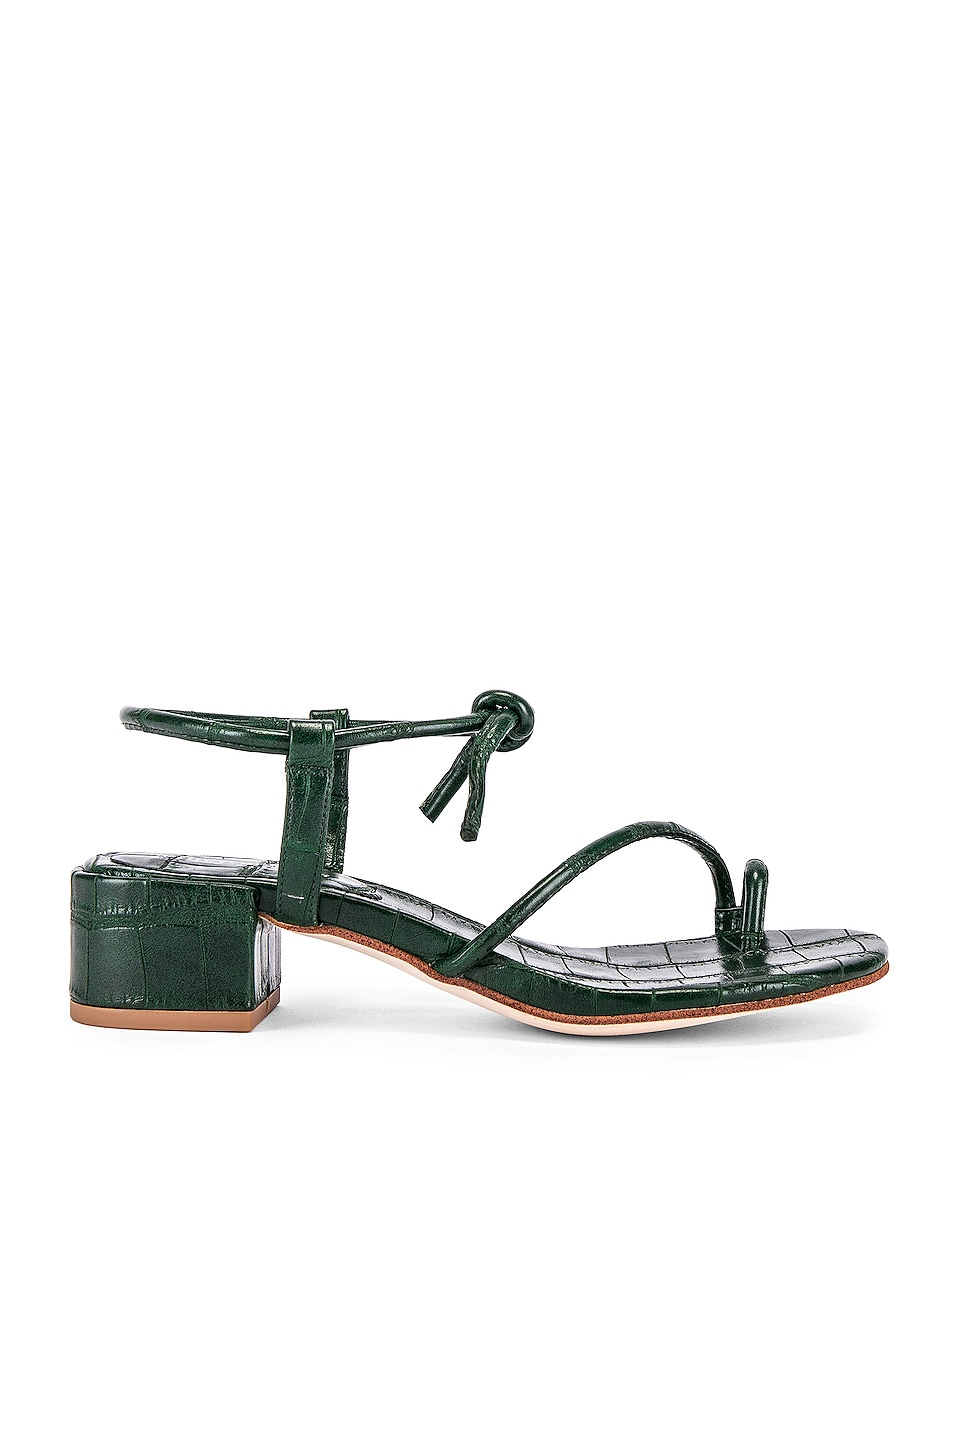 Jeffrey Campbell Zella Sandal in Green Croc